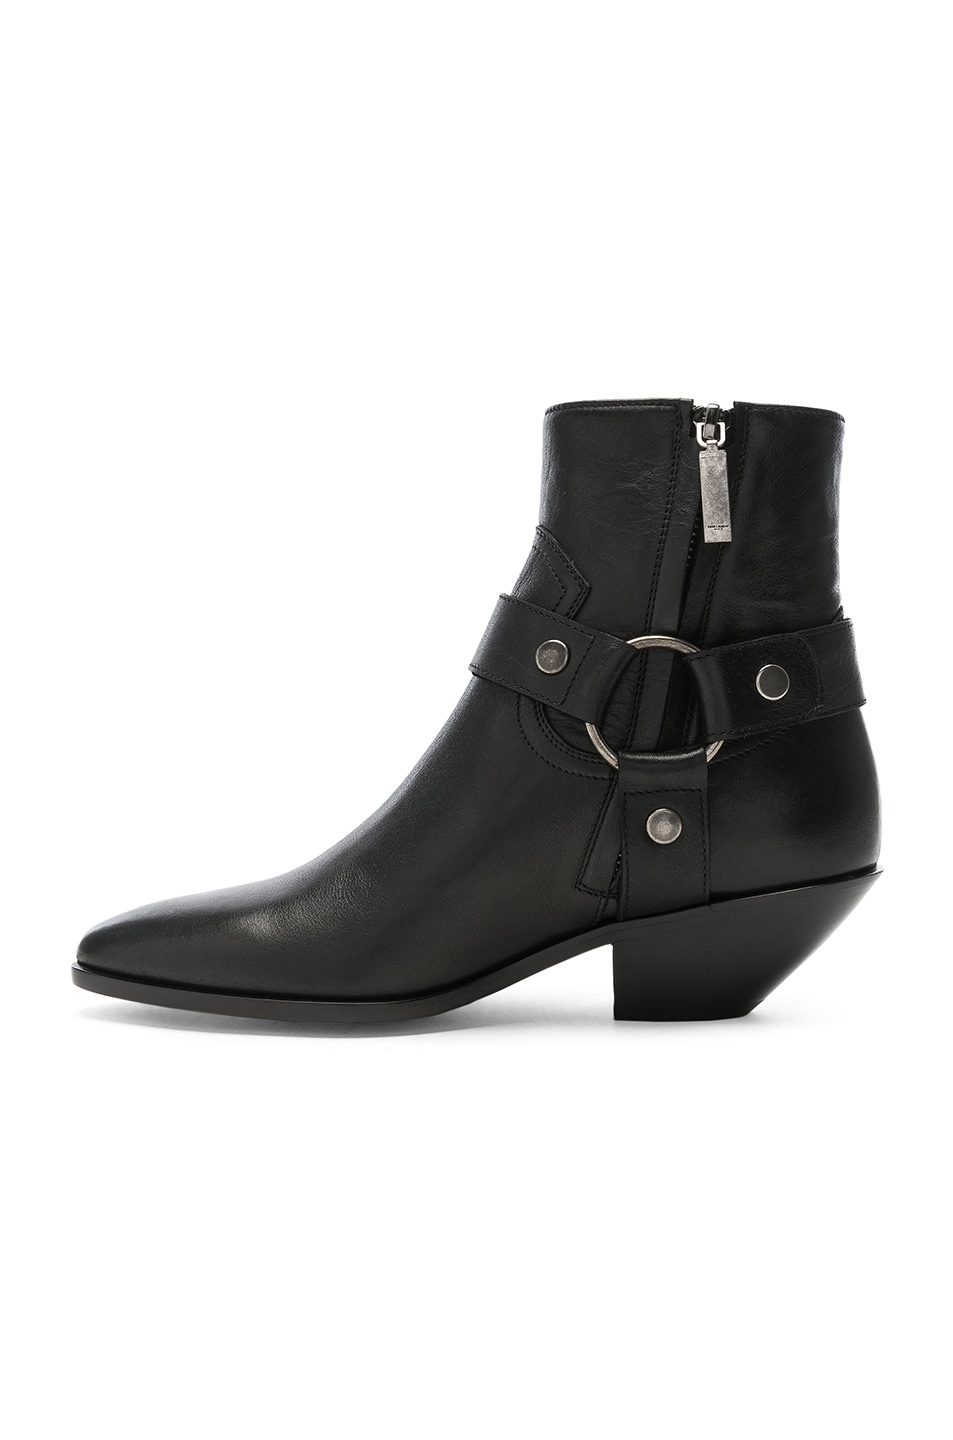 Image 5 of Saint Laurent West Strap Ankle Boots in Black